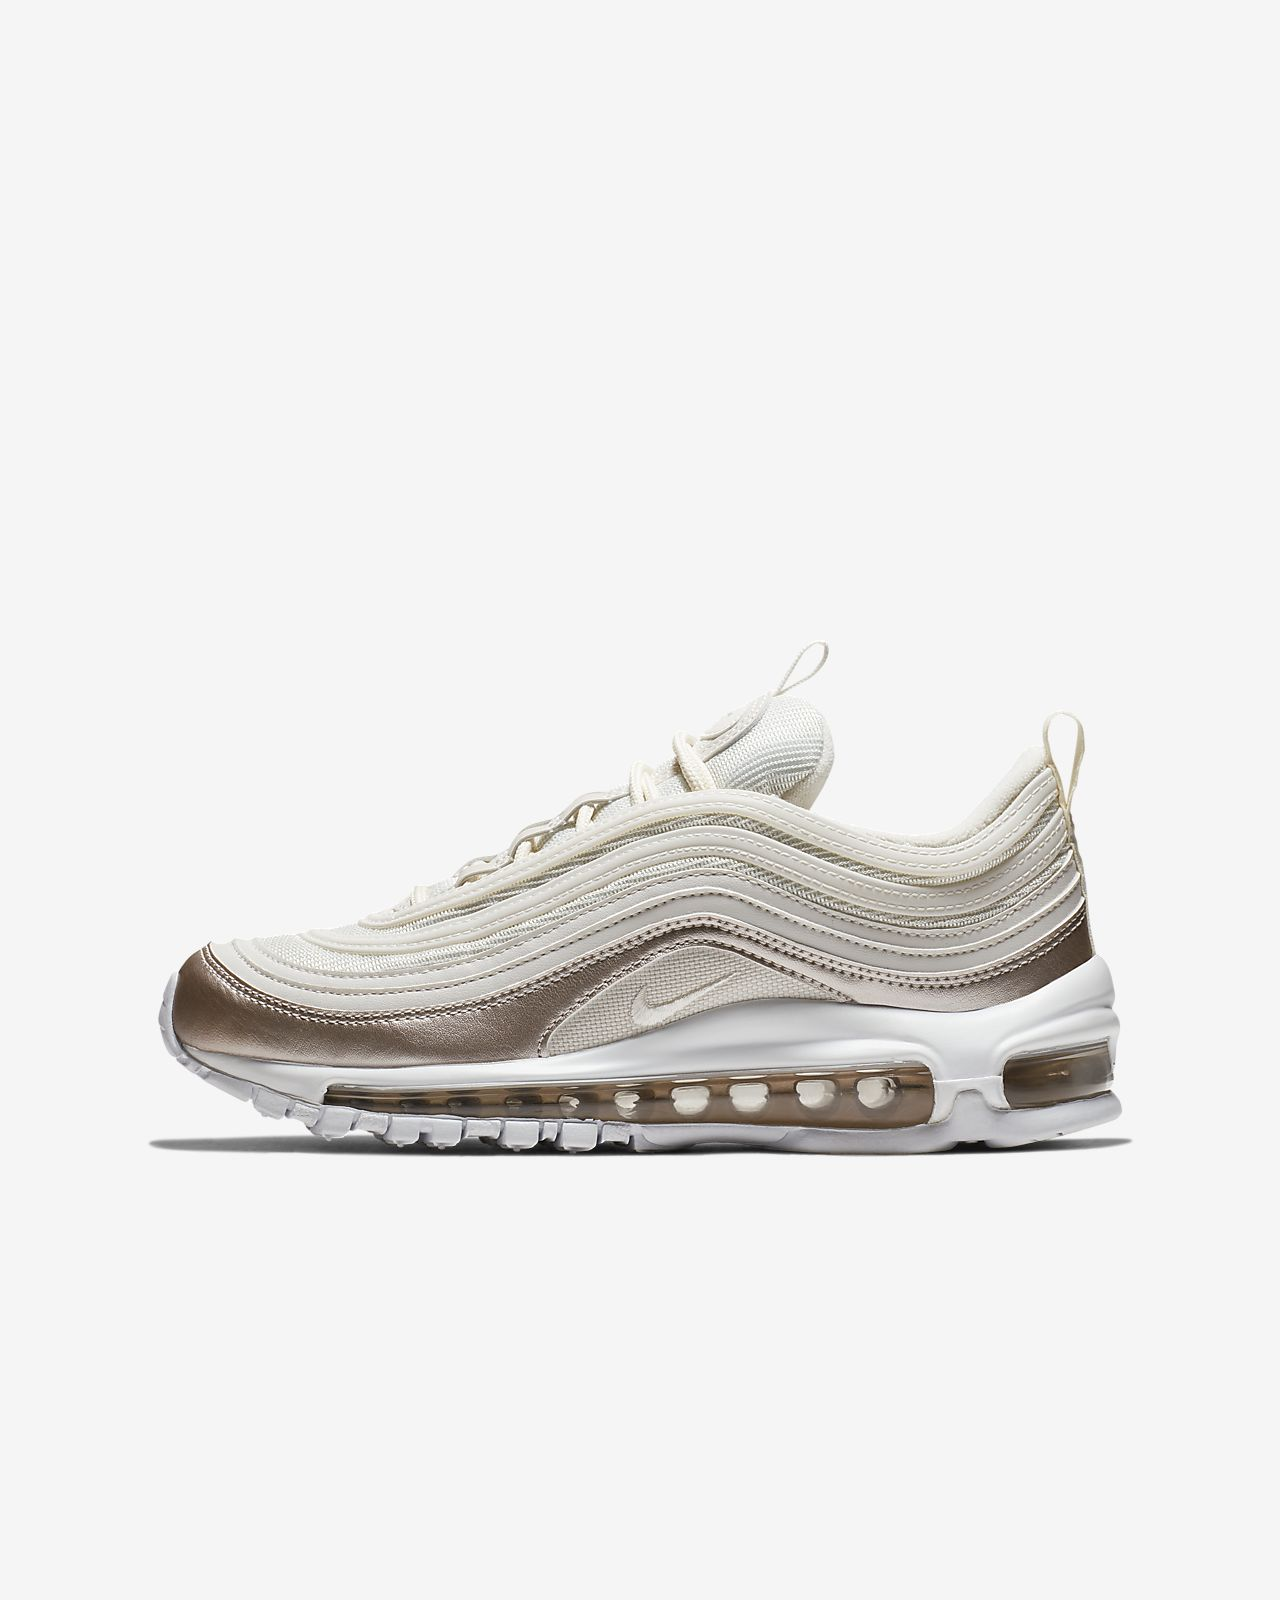 Nike 97 Scarpa Max Air It Ragazzi 7dw0qH1